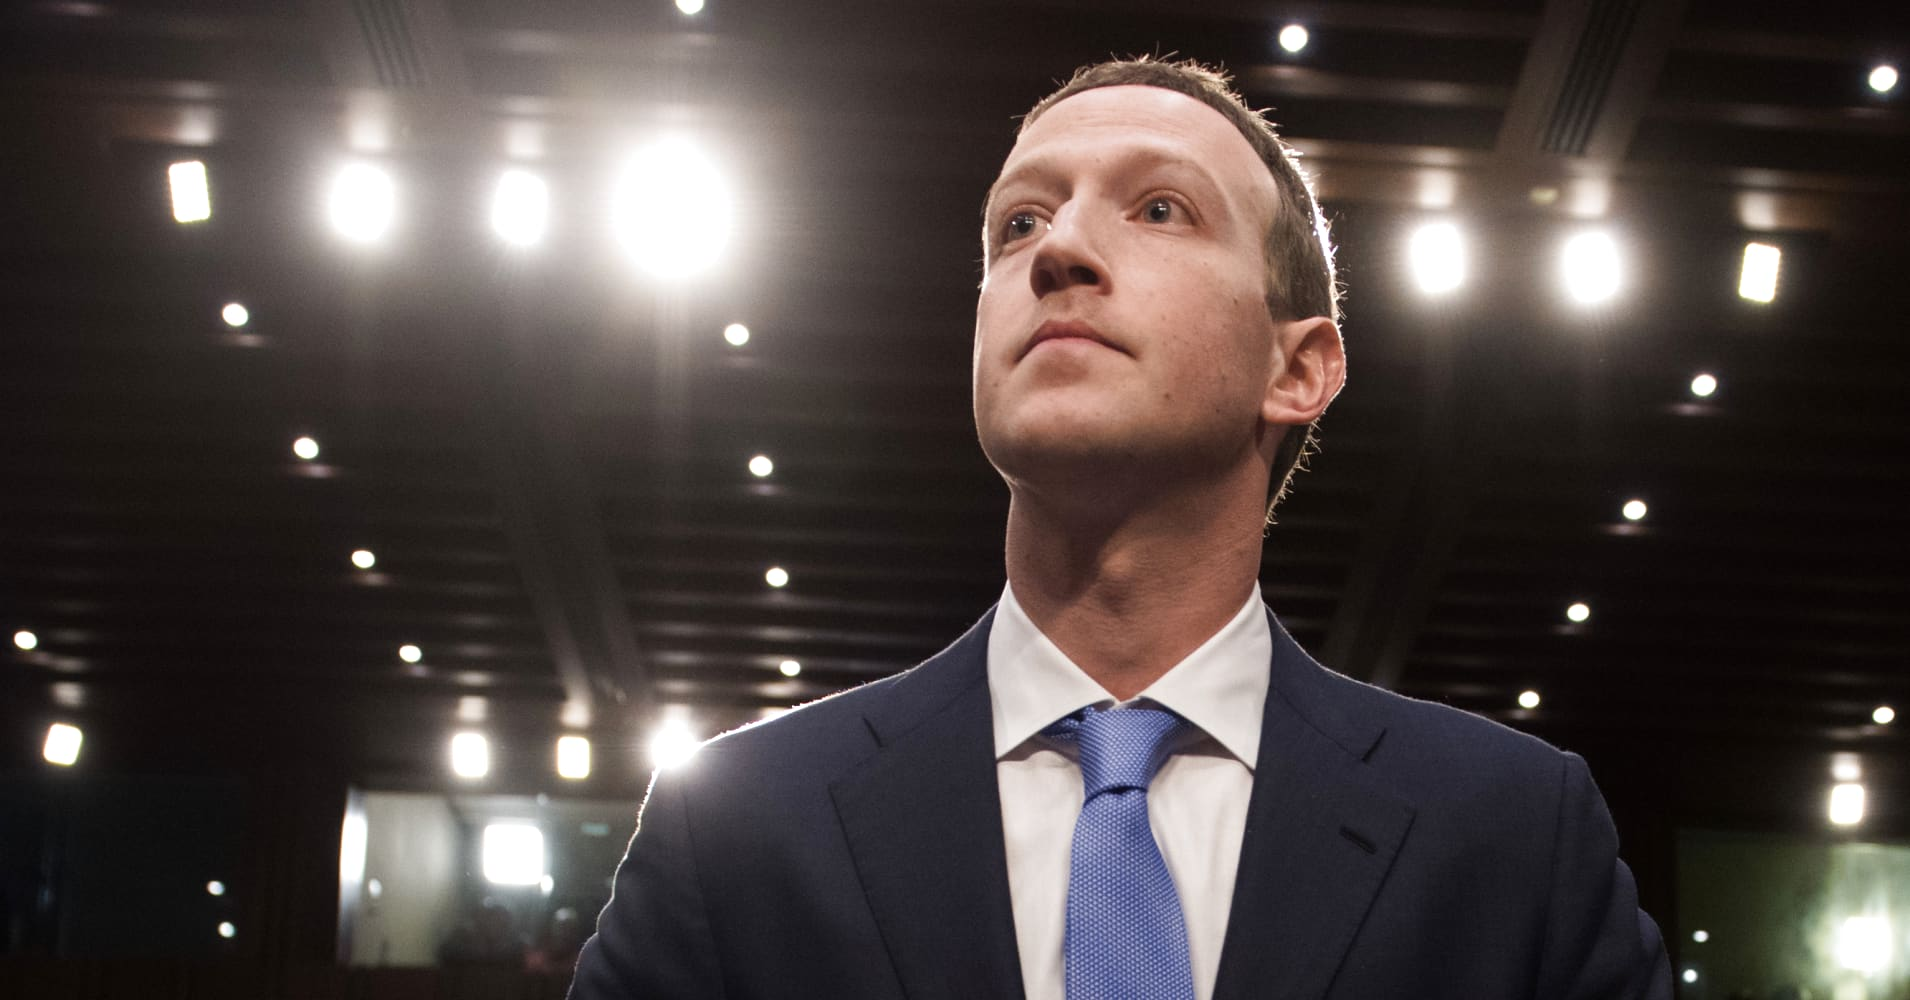 Facebook founder and CEO Mark Zuckerberg arrives to testify following a break during a Senate Commerce, Science and Transportation Committee and Senate Judiciary Committee joint hearing about Facebook on Capitol Hill in Washington, DC.